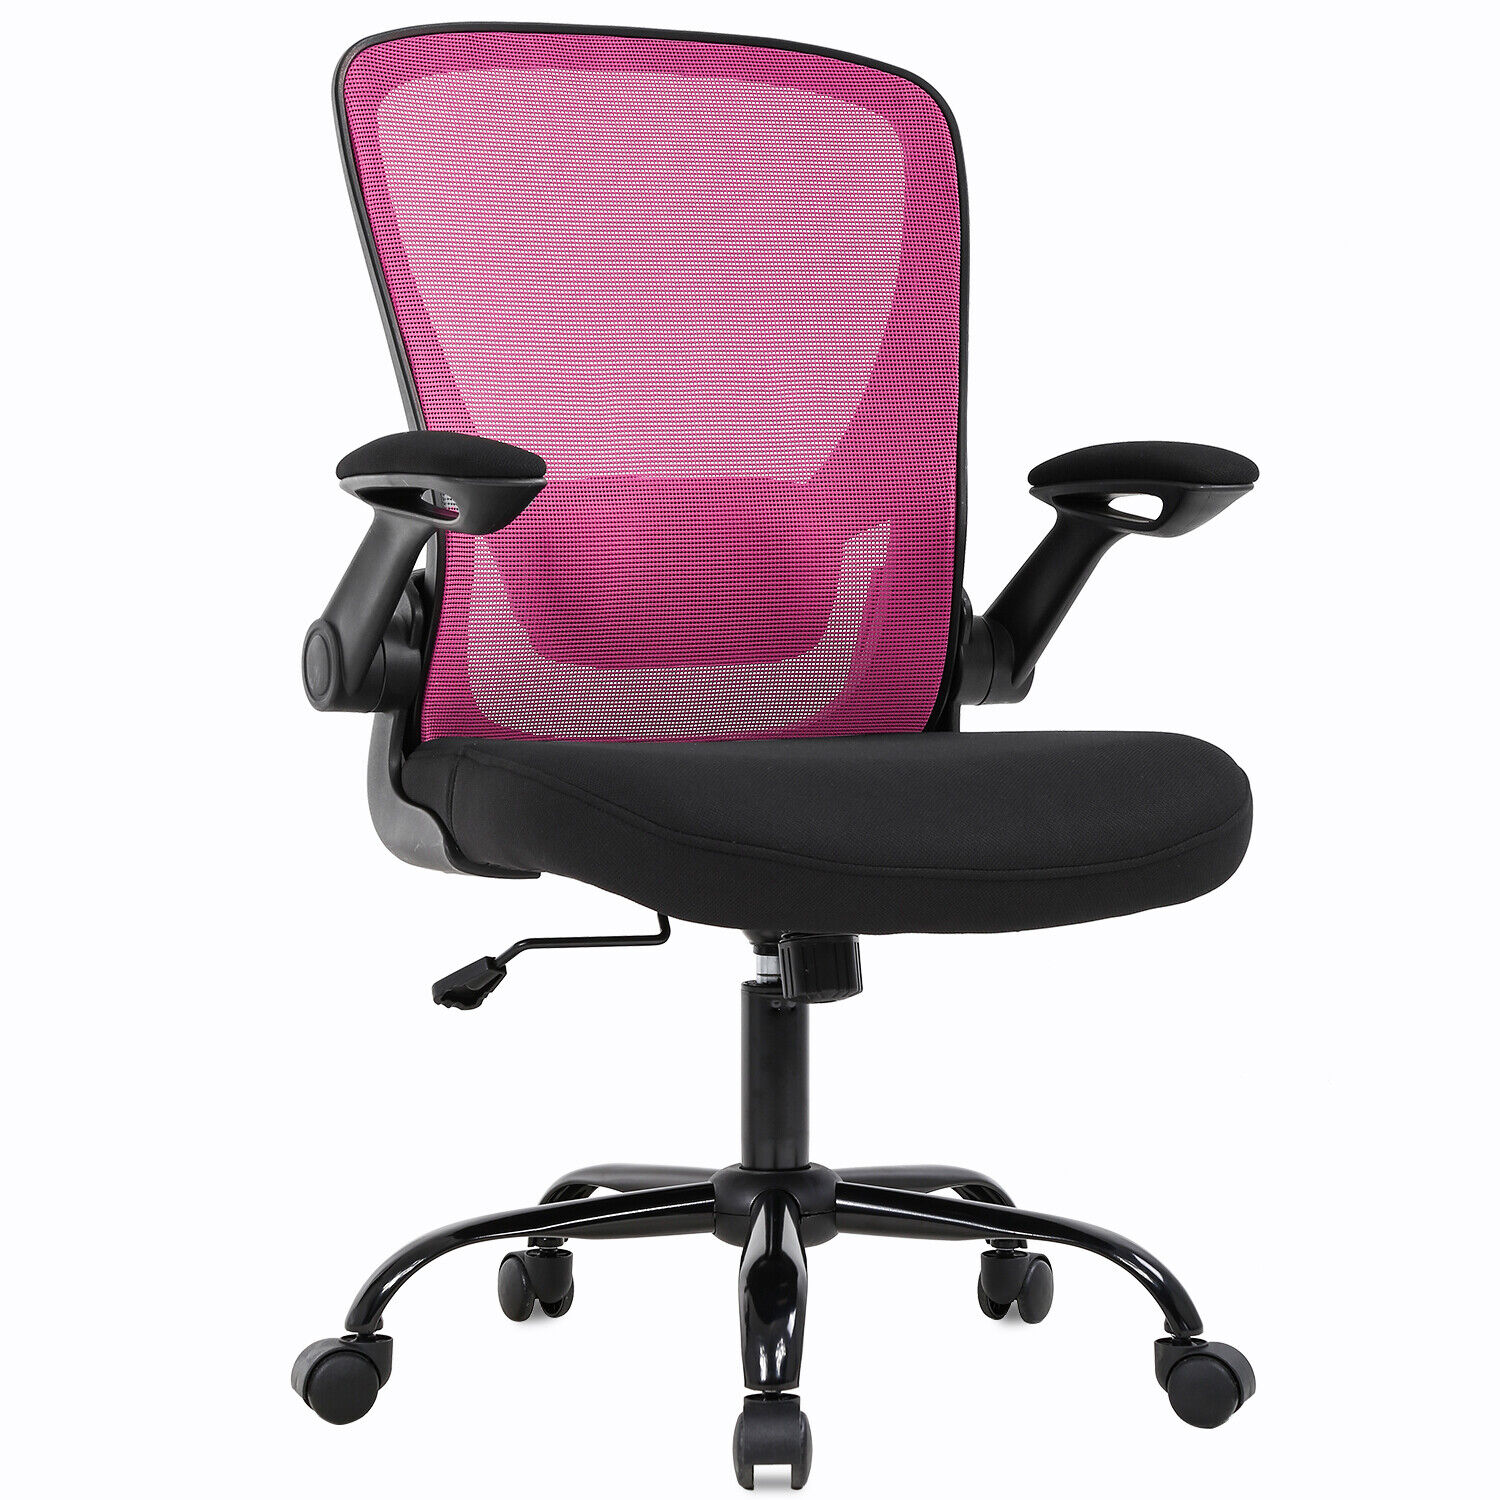 Home Office Chair Mid backAdjustable with Lumbar Support Arms Swivel Rolling Chairs